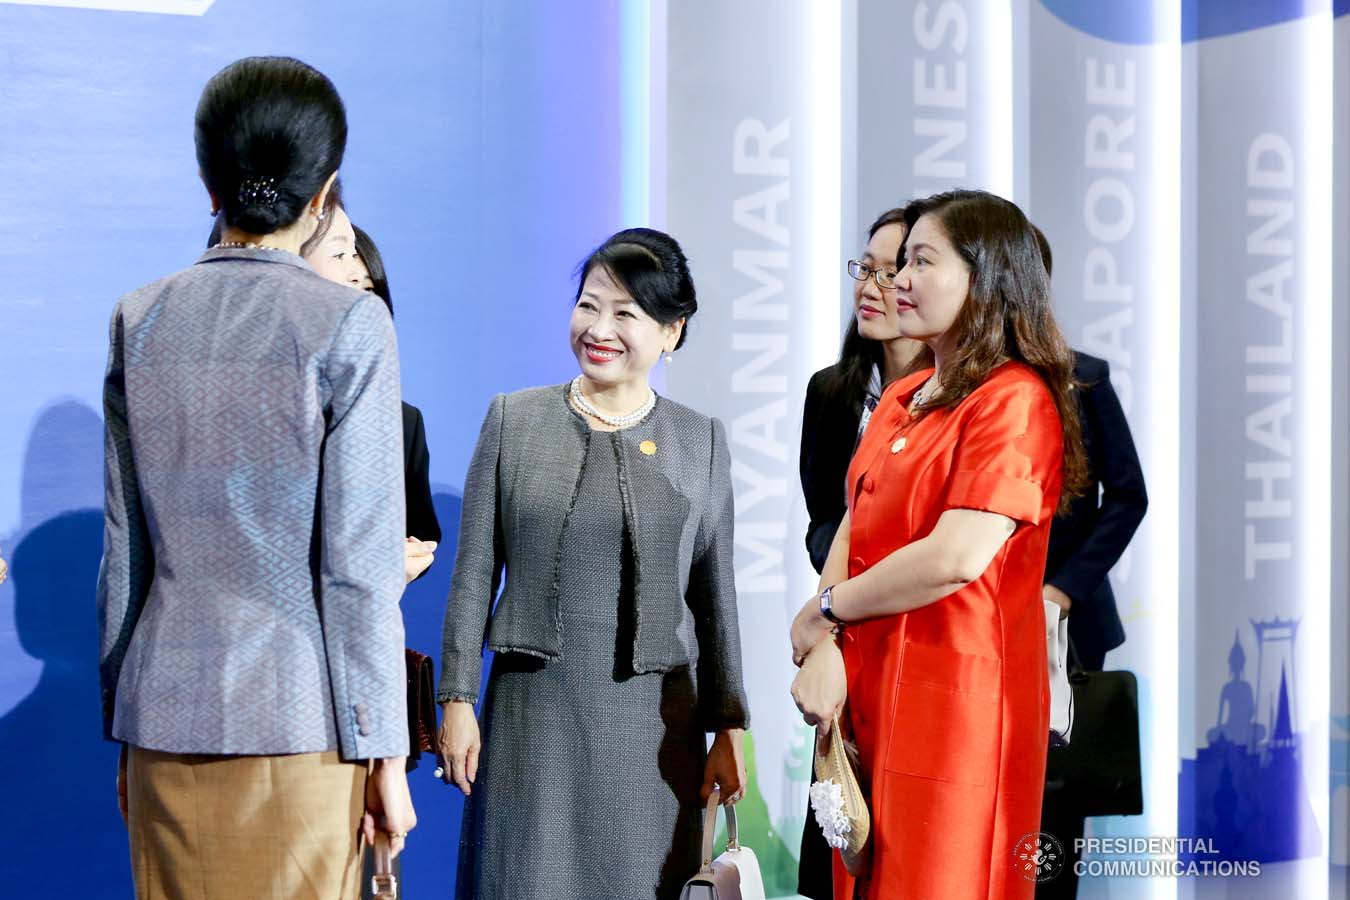 President Rodrigo Roa Duterte's partner Cielito Avanceña joins the spouses of the leaders from the Association of Southeast Asian Nations (ASEAN) member countries and Republic of Korea (ROK) President Moon Jae-in during the ASEAN-ROK K-Beauty Festival at the Busan Exhibition and Convention Center on November 26, 2019. RICHARD MADELO/PRESIDENTIAL PHOTO